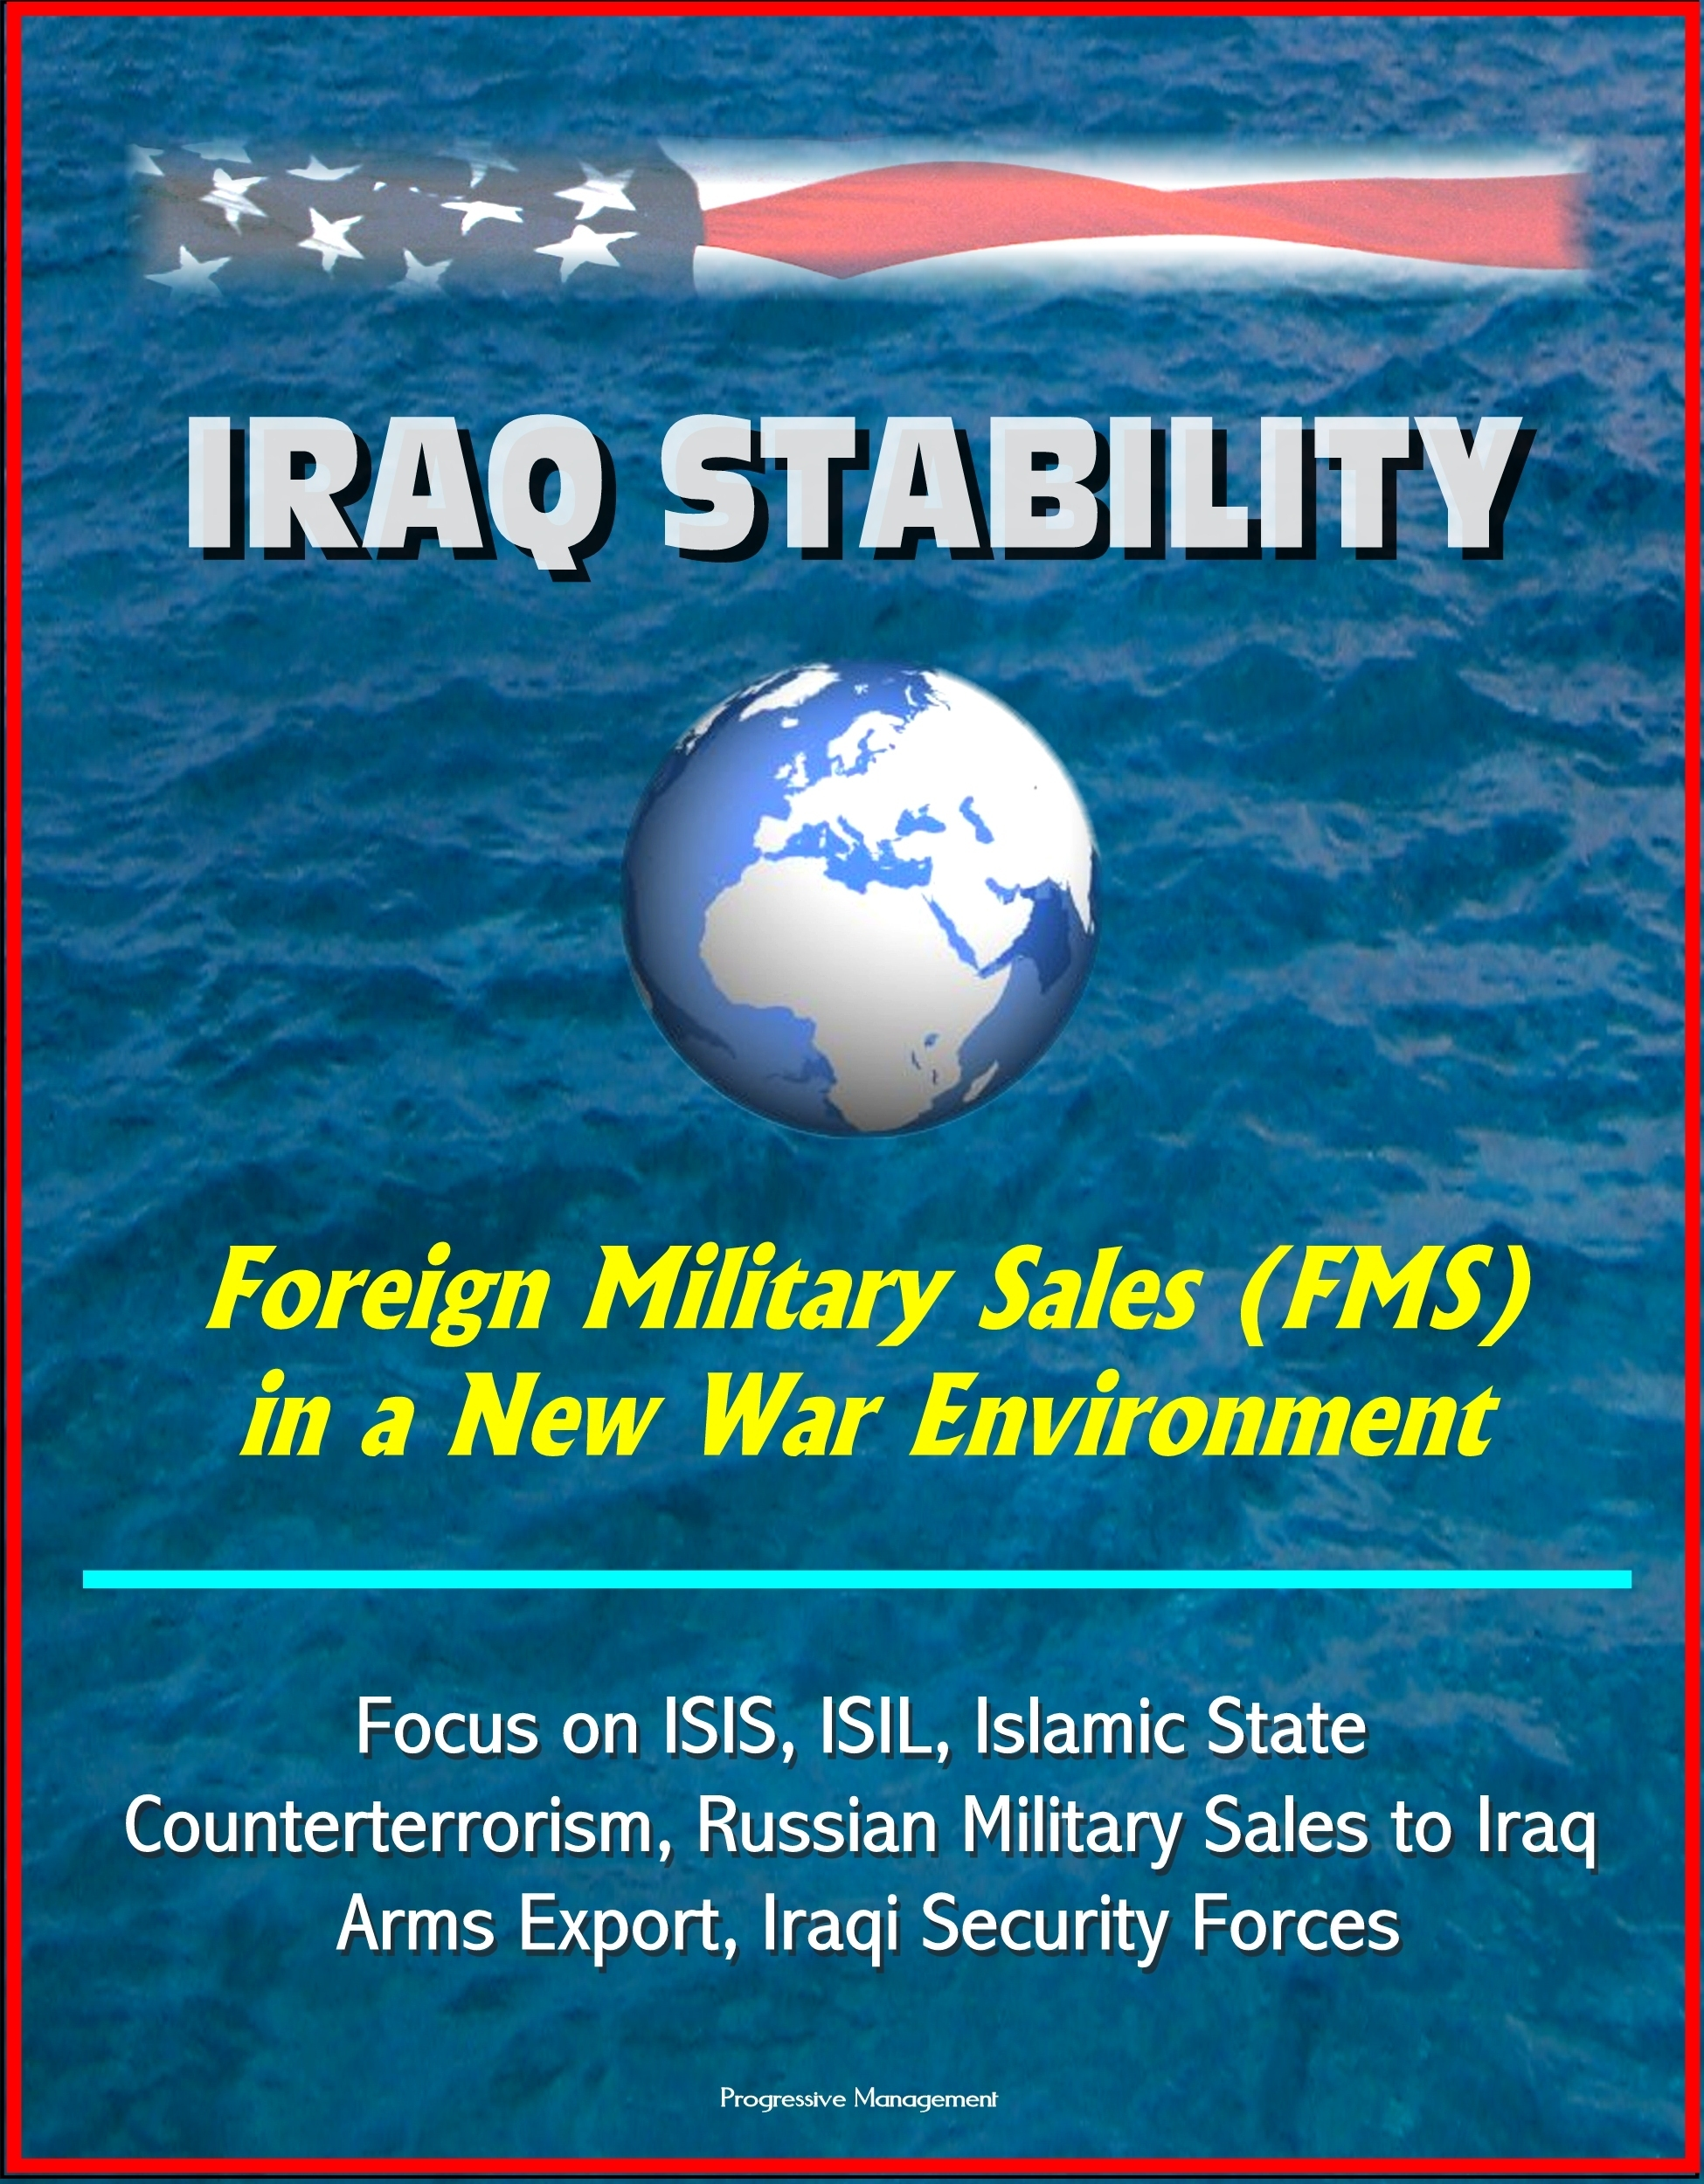 Iraq Stability: Foreign Military Sales (FMS) in a New War Environment - Focus on ISIS, ISIL, Islamic State, Counterterrorism, Russian Military Sales to Iraq, Arms Export, Iraqi Security Forces  by  Progressive Management